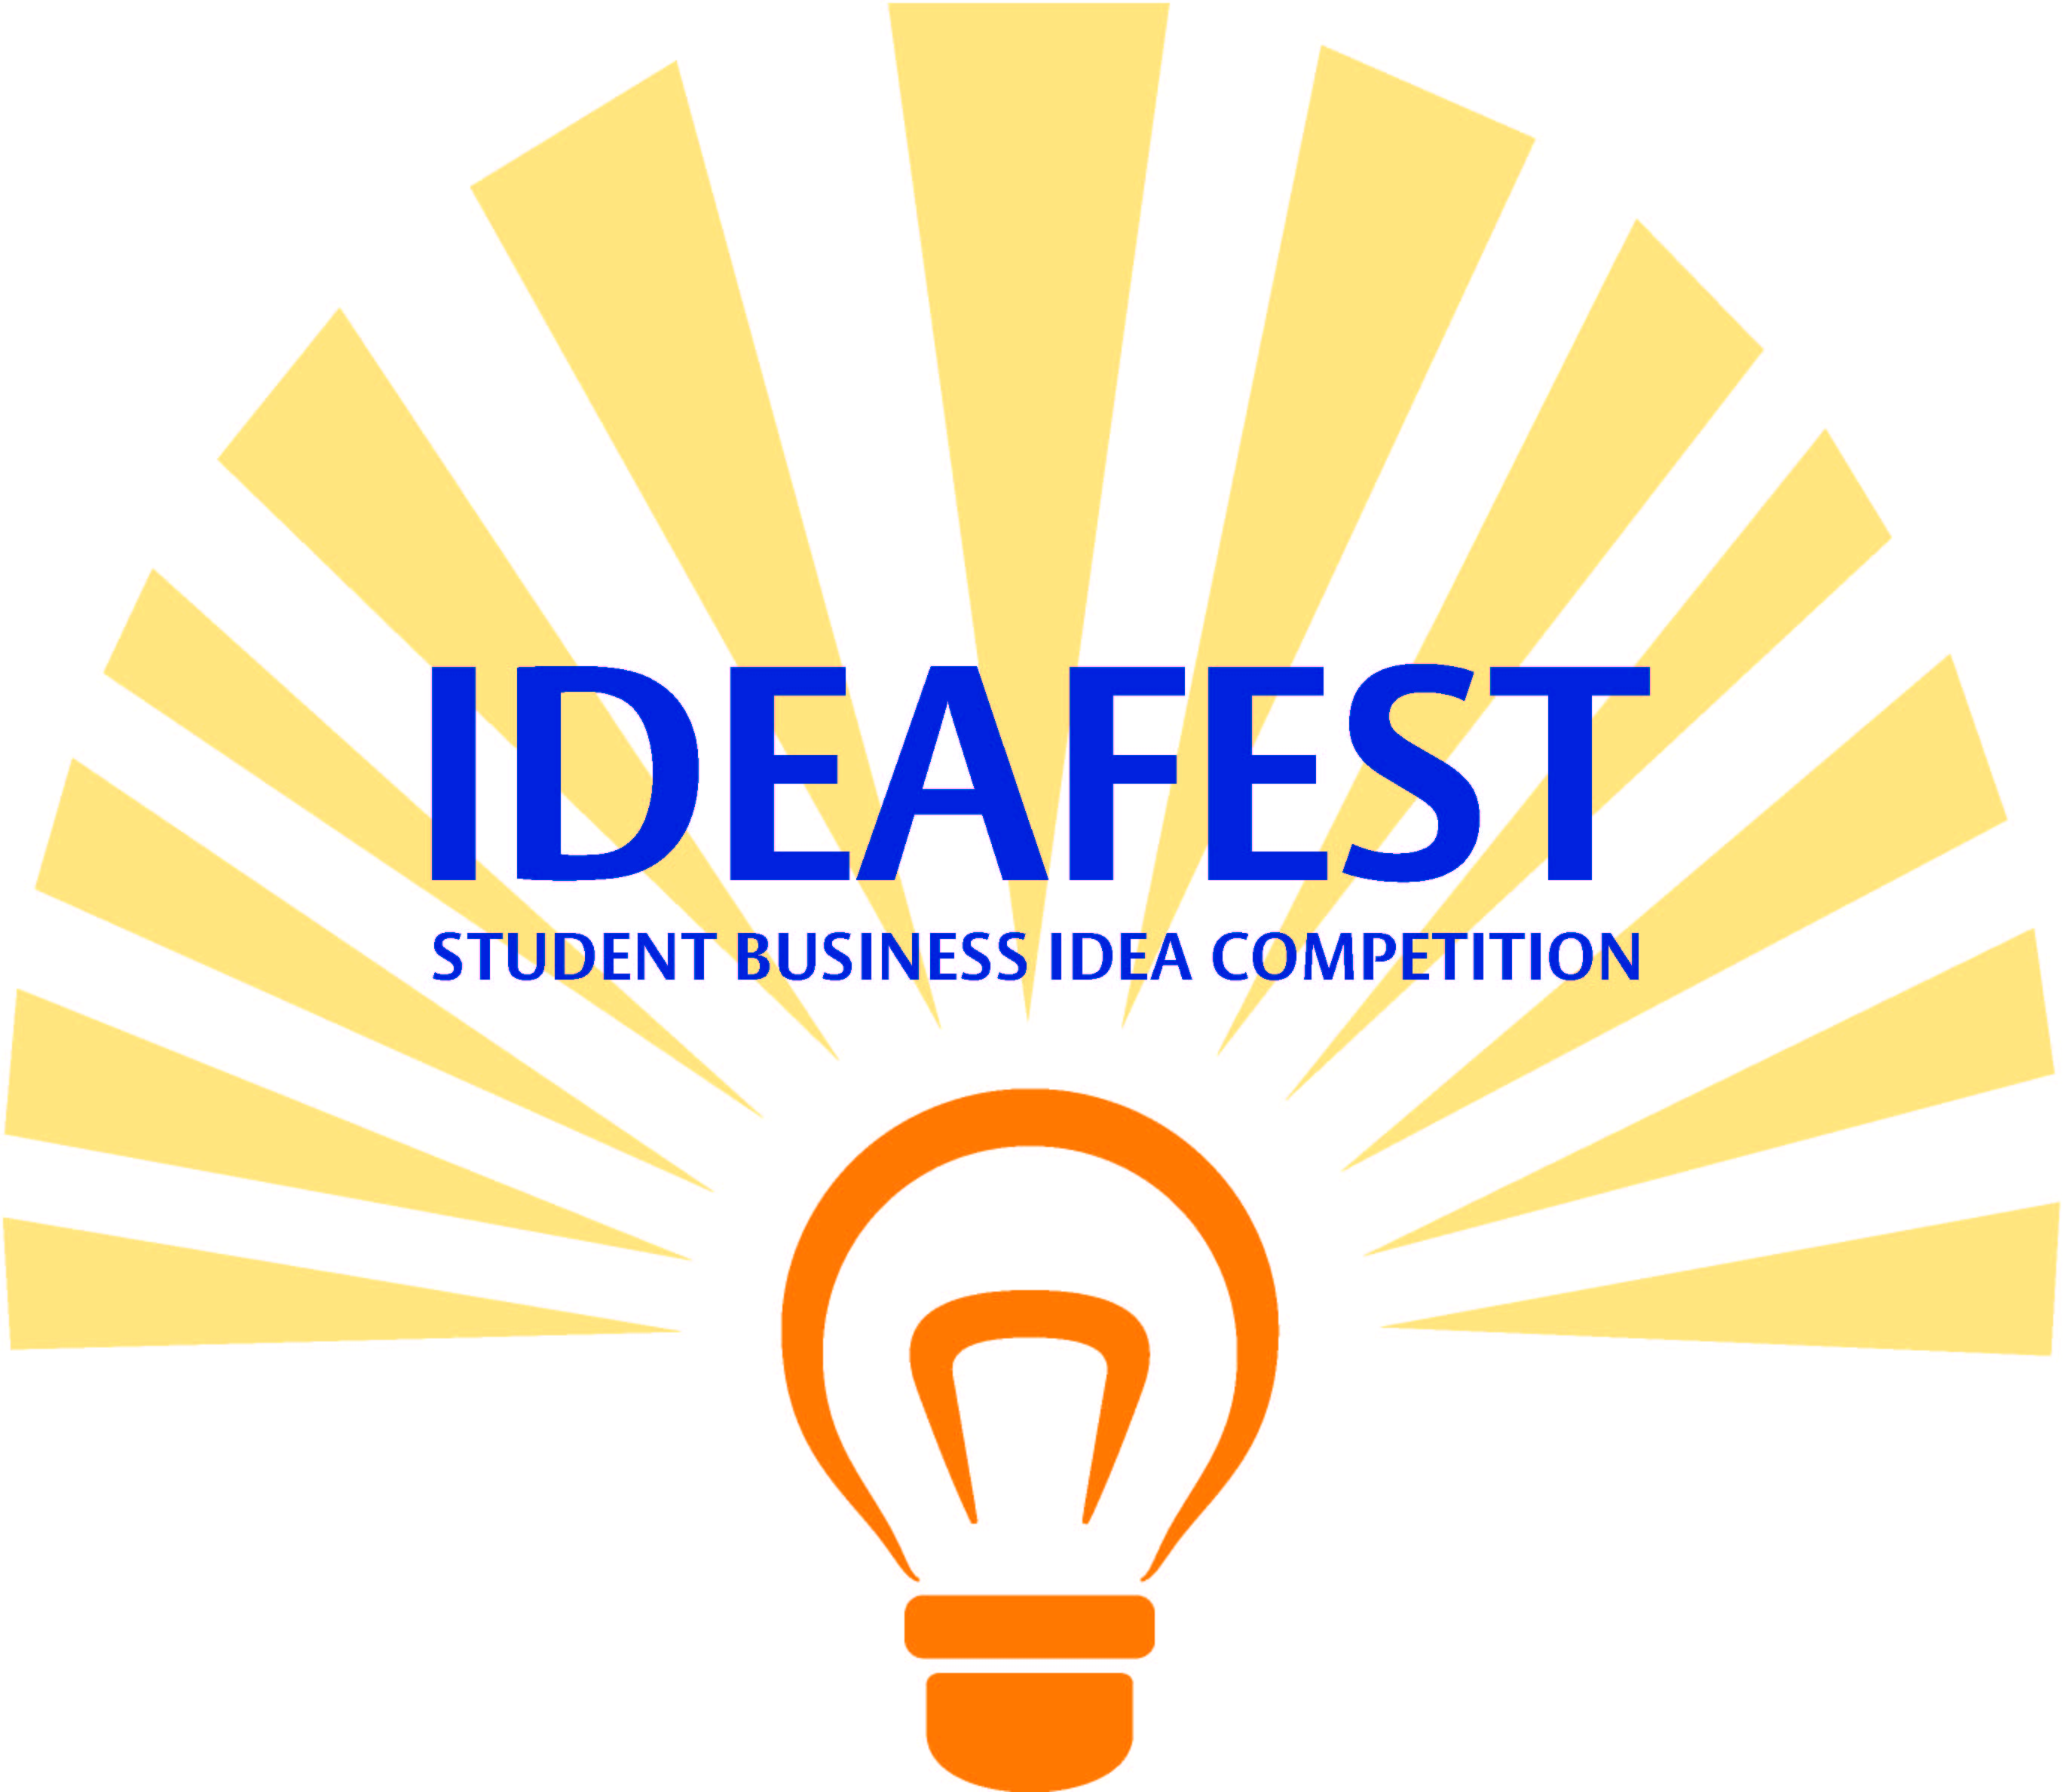 Creative Spark IDEAFEST Promotional Video Competition 2020 Won by Lucas Cimino